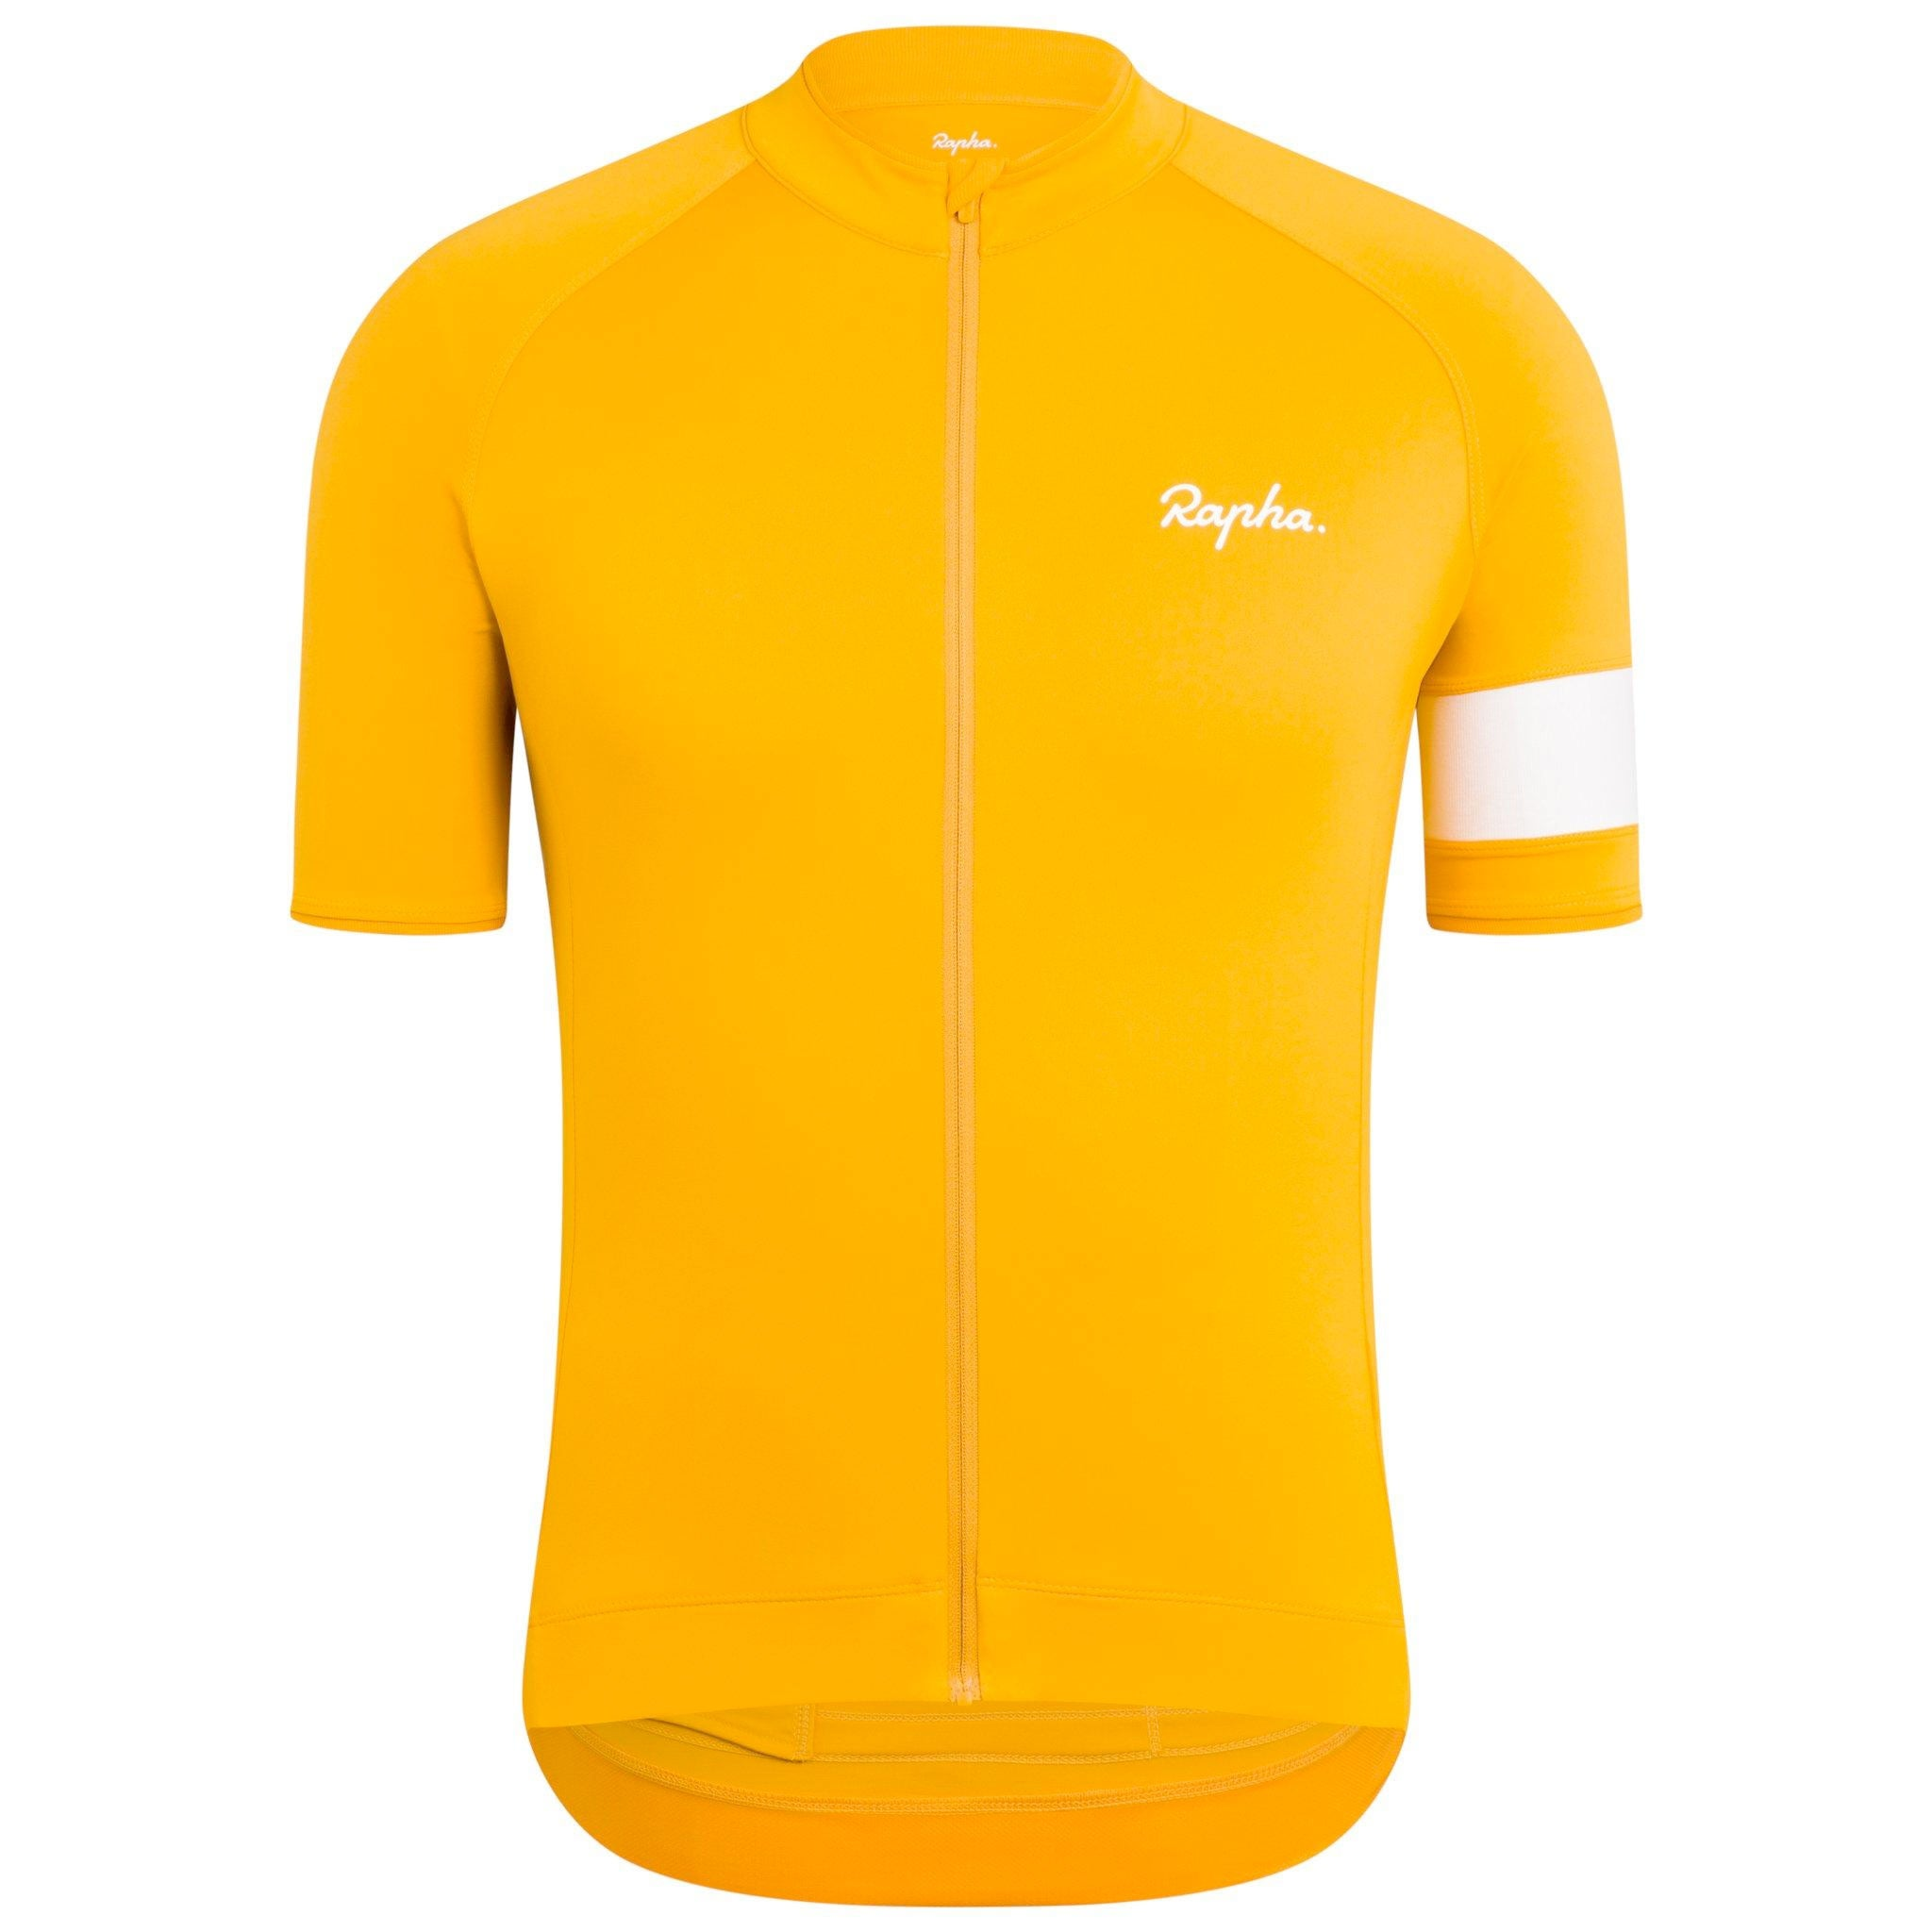 Rapha Mens Core Jersey, Yellow buy online at Woolys Wheels and receive free delivery